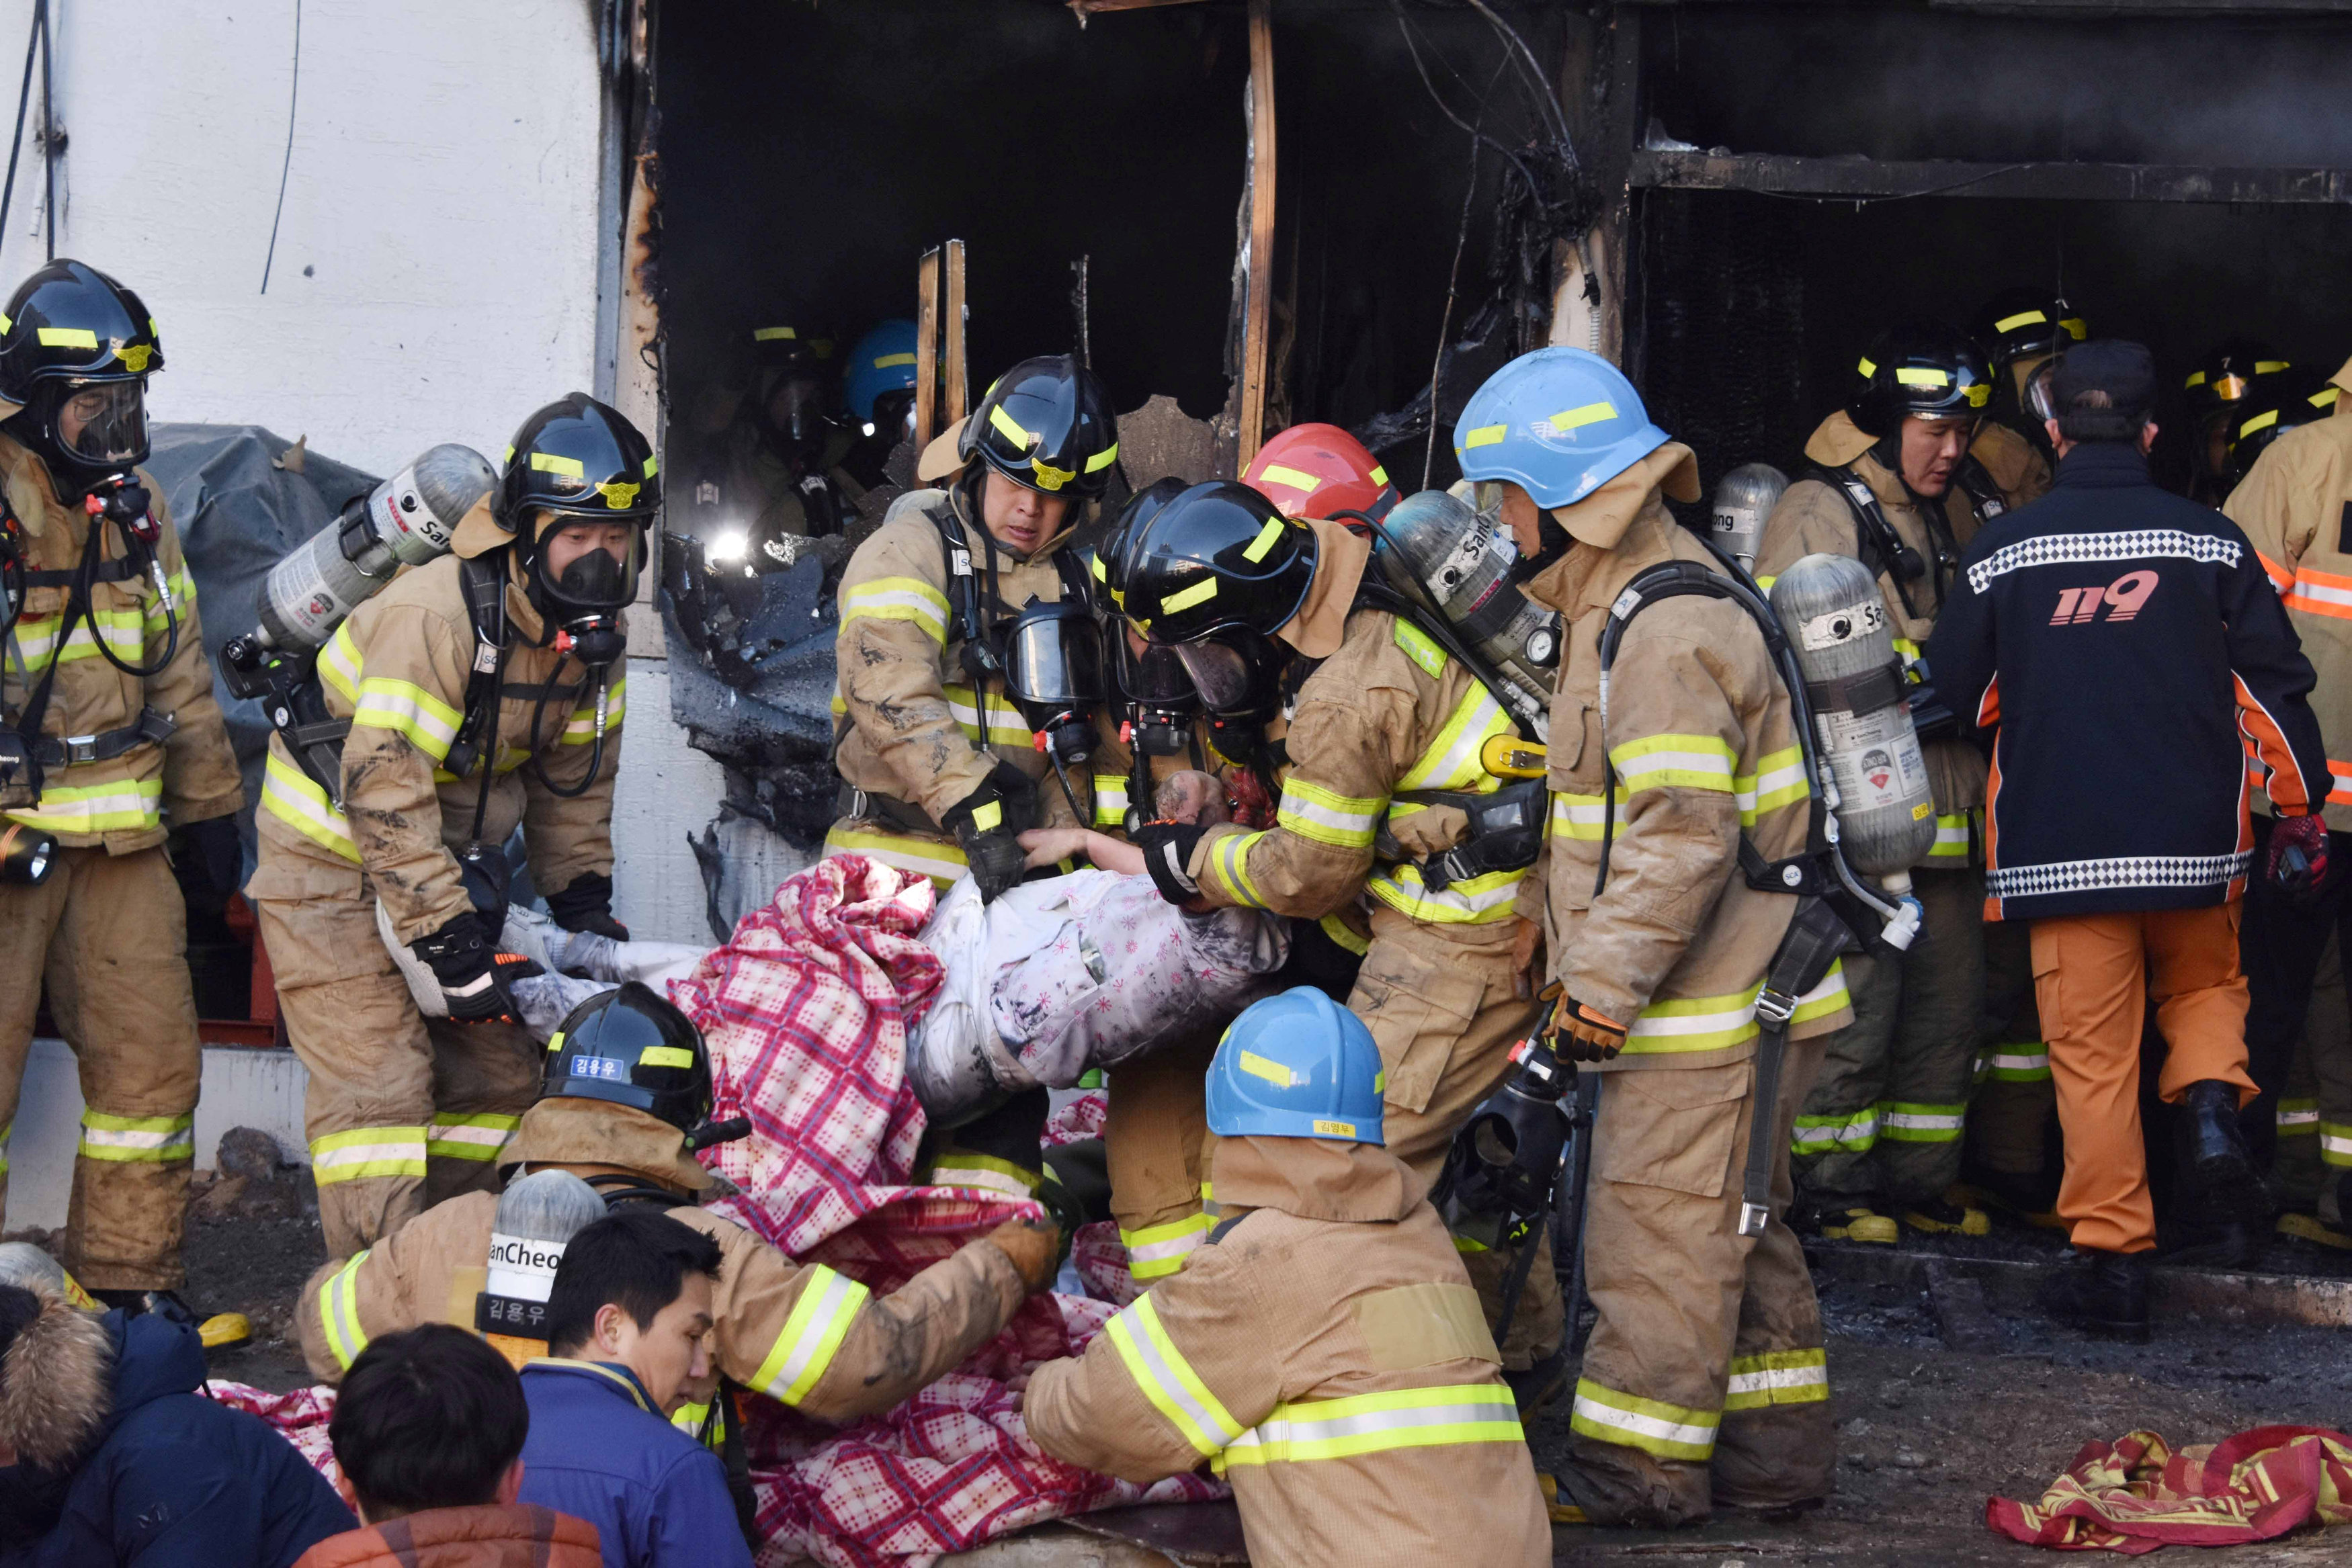 Firefighters rescue a patient from a burnt hospital in Miryang, South Korea, January 26, 2018.   Kim Gu-Yeon/Gyeongn Domin Ilbo/Handout via REUTERS ATTENTION EDITORS - THIS PICTURE WAS PROVIDED BY A THIRD PARTY. SOUTH KOREA OUT.